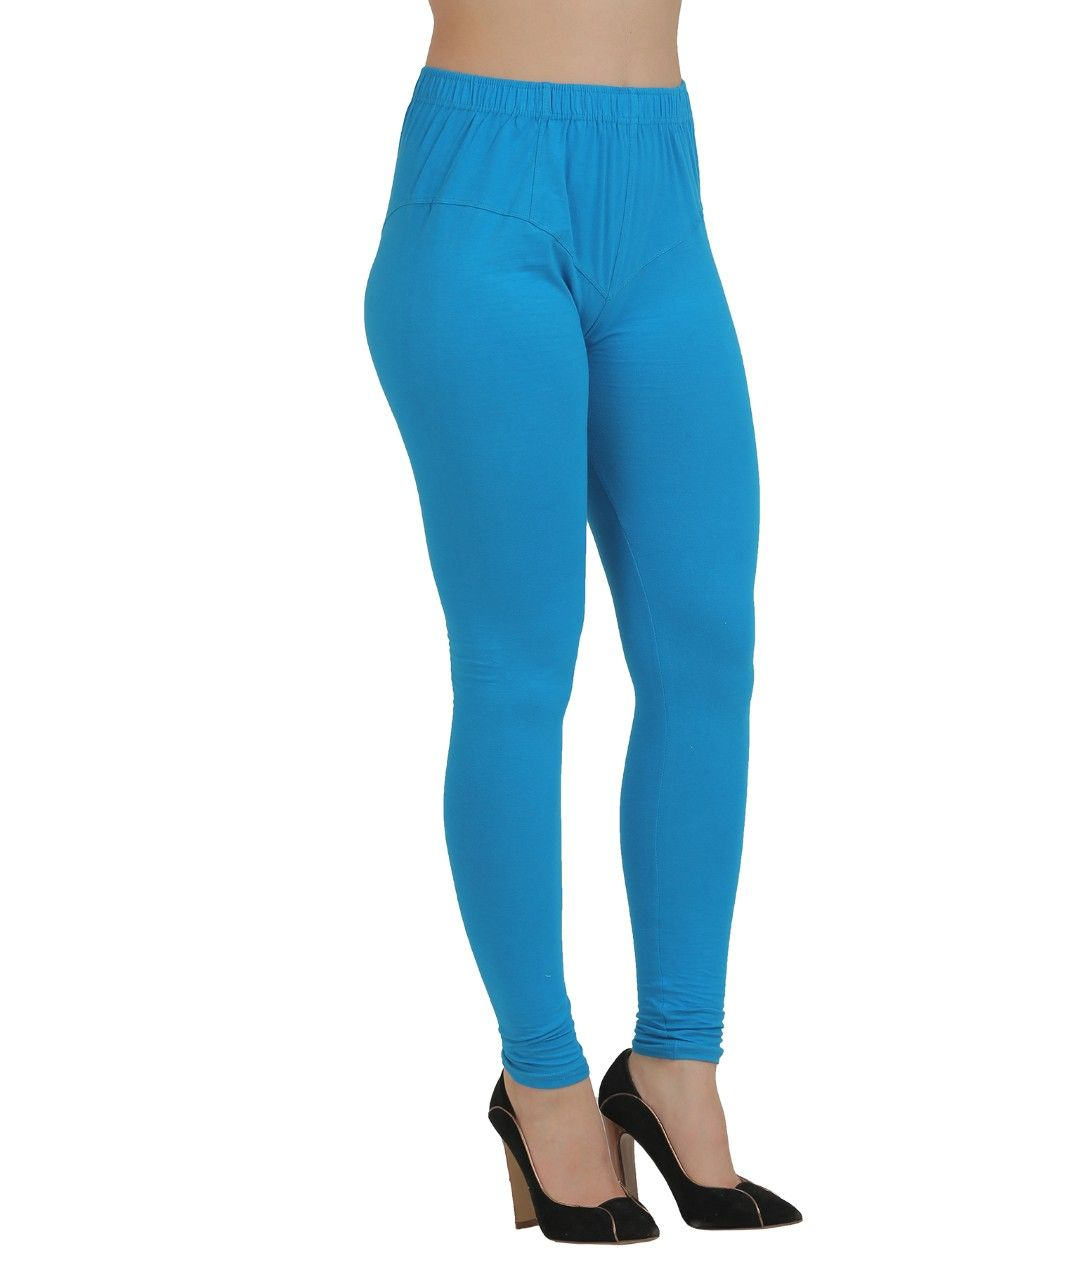 capri, fleece, knit, active, high waist & more in tons of hereffil53.cfl, Home & More· New Events Every Day· Hurry, Limited Inventory· New Deals Every Day57,+ followers on Twitter.